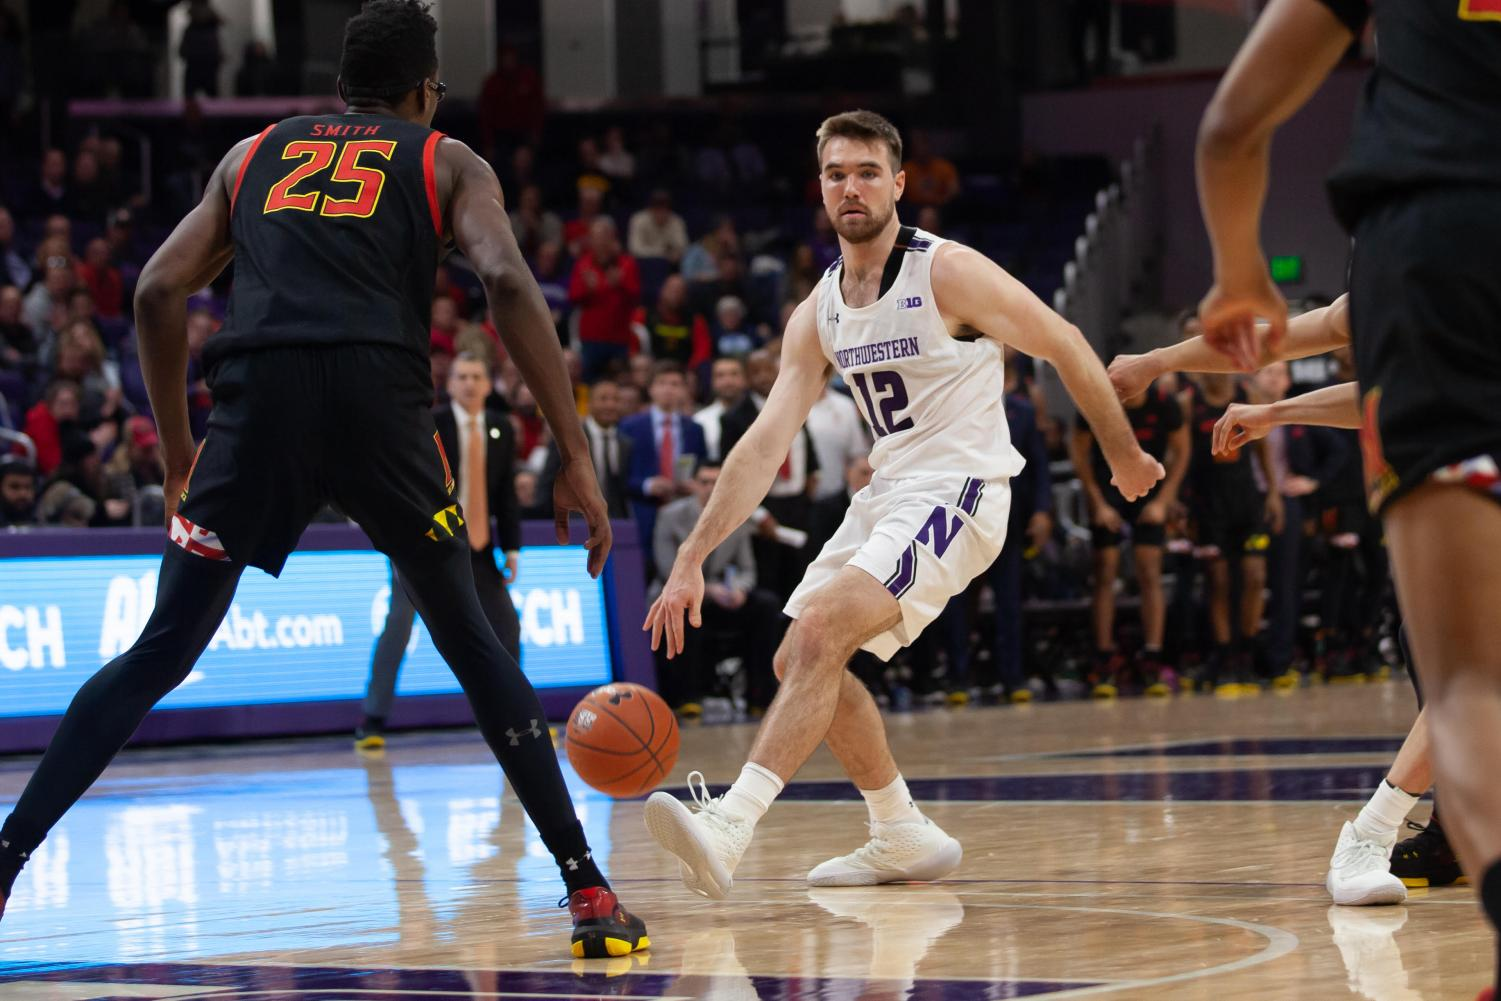 Pat Spencer looks to make a move. The Wildcats dropped their third conference game in a row to Maryland on Thursday.